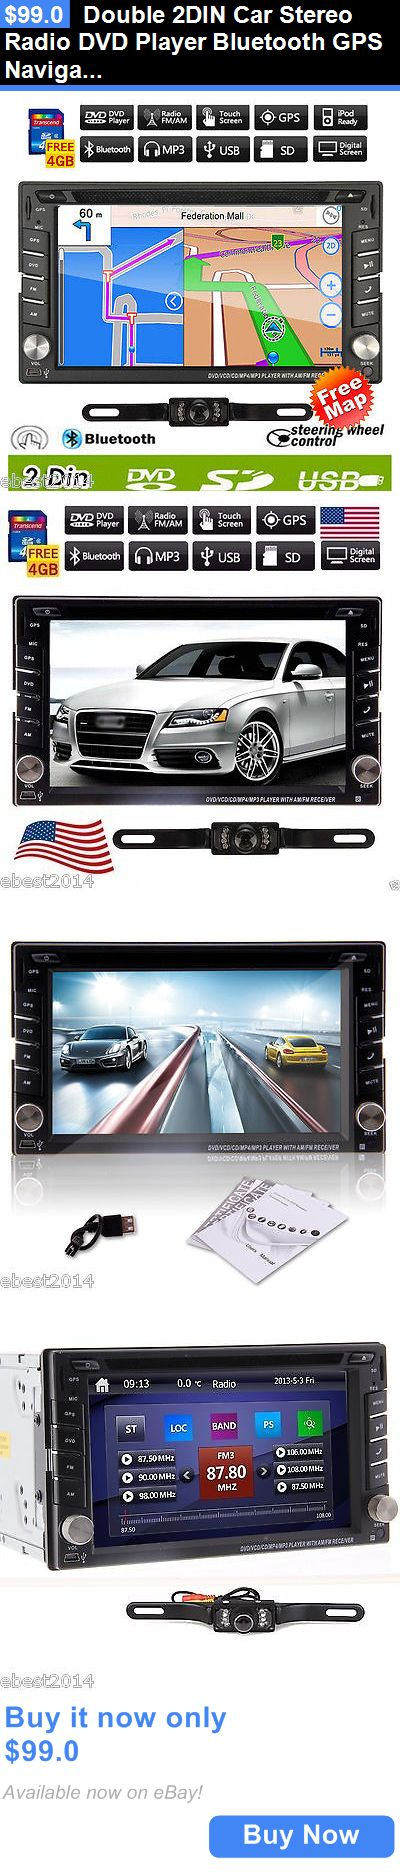 Vehicle Electronics And GPS: Double 2Din Car Stereo Radio Dvd Player Bluetooth Gps Navigation With Map+Camera BUY IT NOW ONLY: $99.0